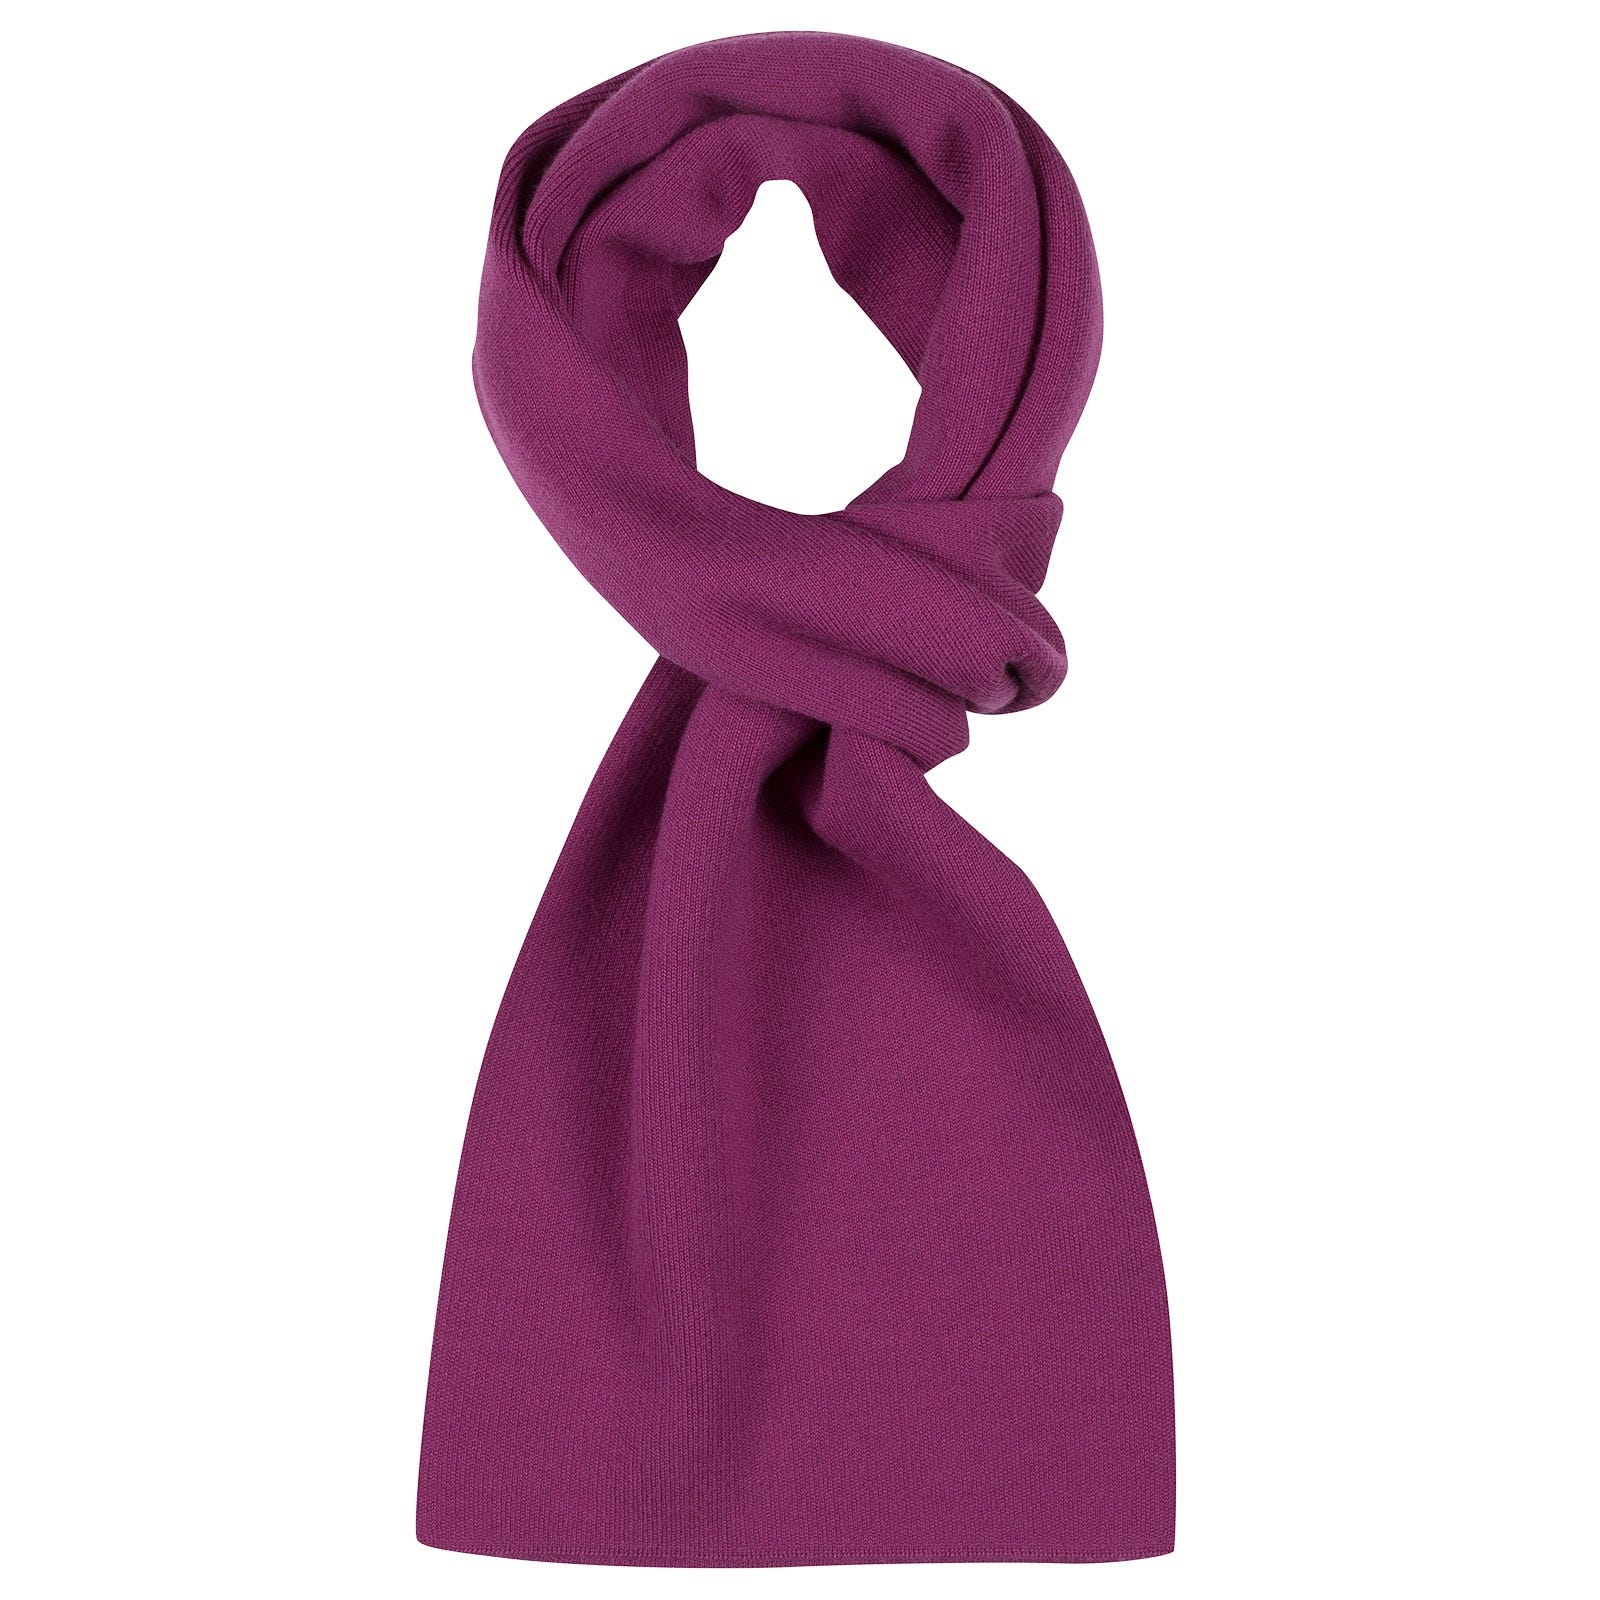 John Smedley pintail Merino Wool Scarf in Prism Violet-ONE